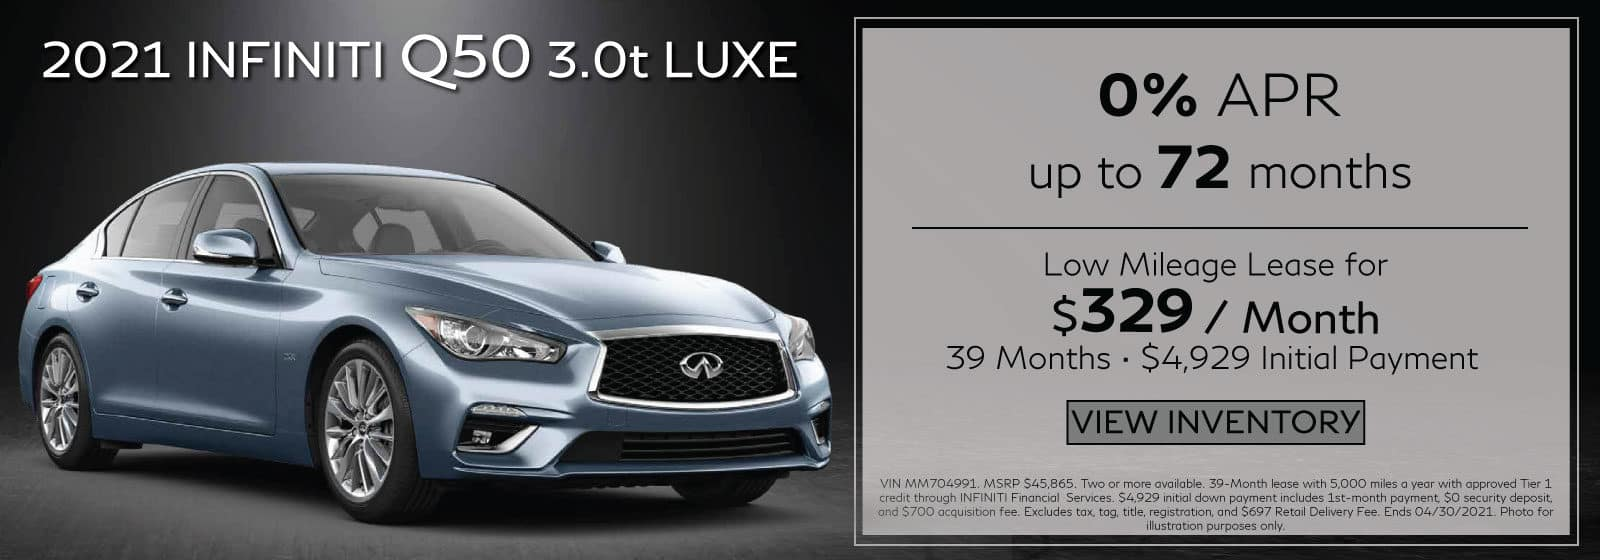 2021 Q50 3.0t PURE. $329/mo for 39 months. $4,929 Initial Payment